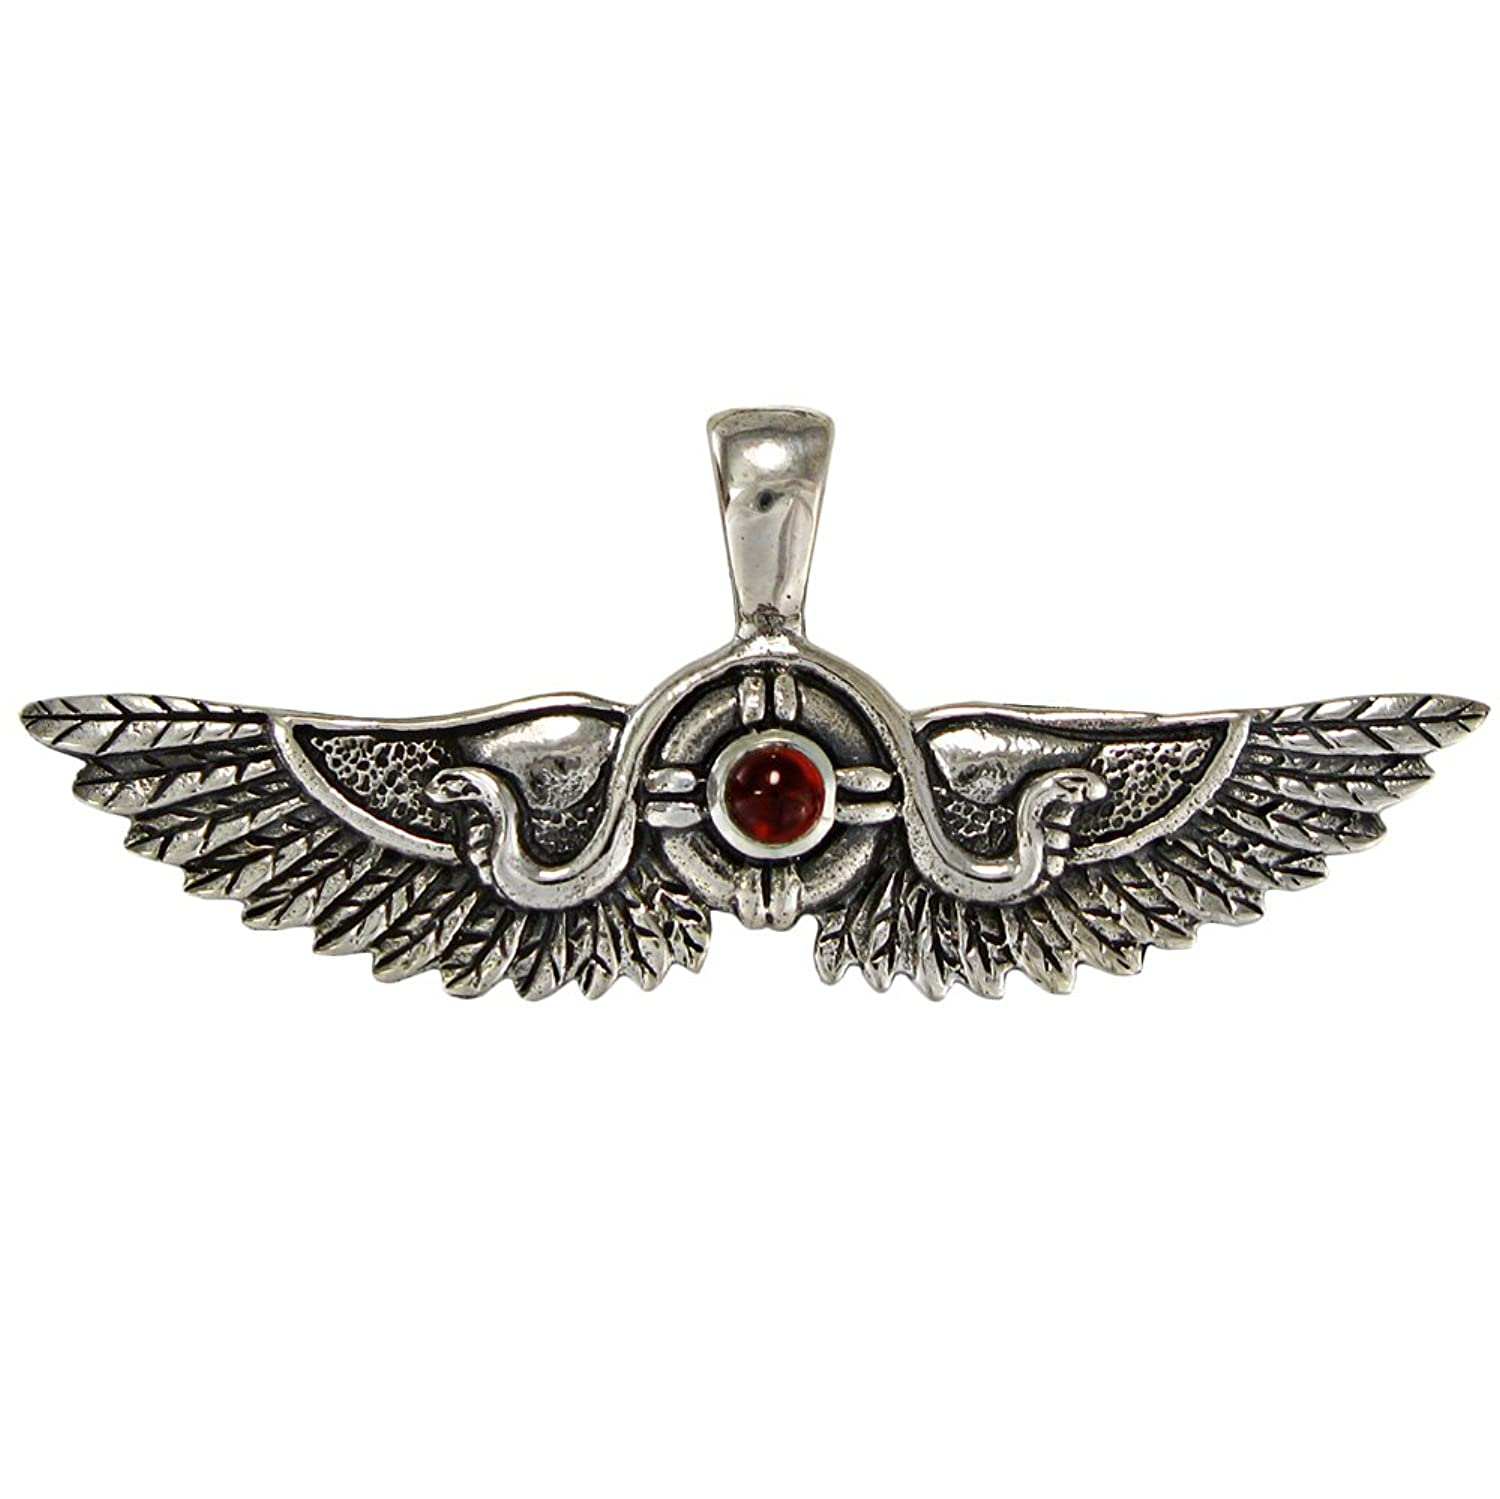 alex silver in jewelry woo view rainbow lyst sterling necklace fullscreen winged enamel pendant heart